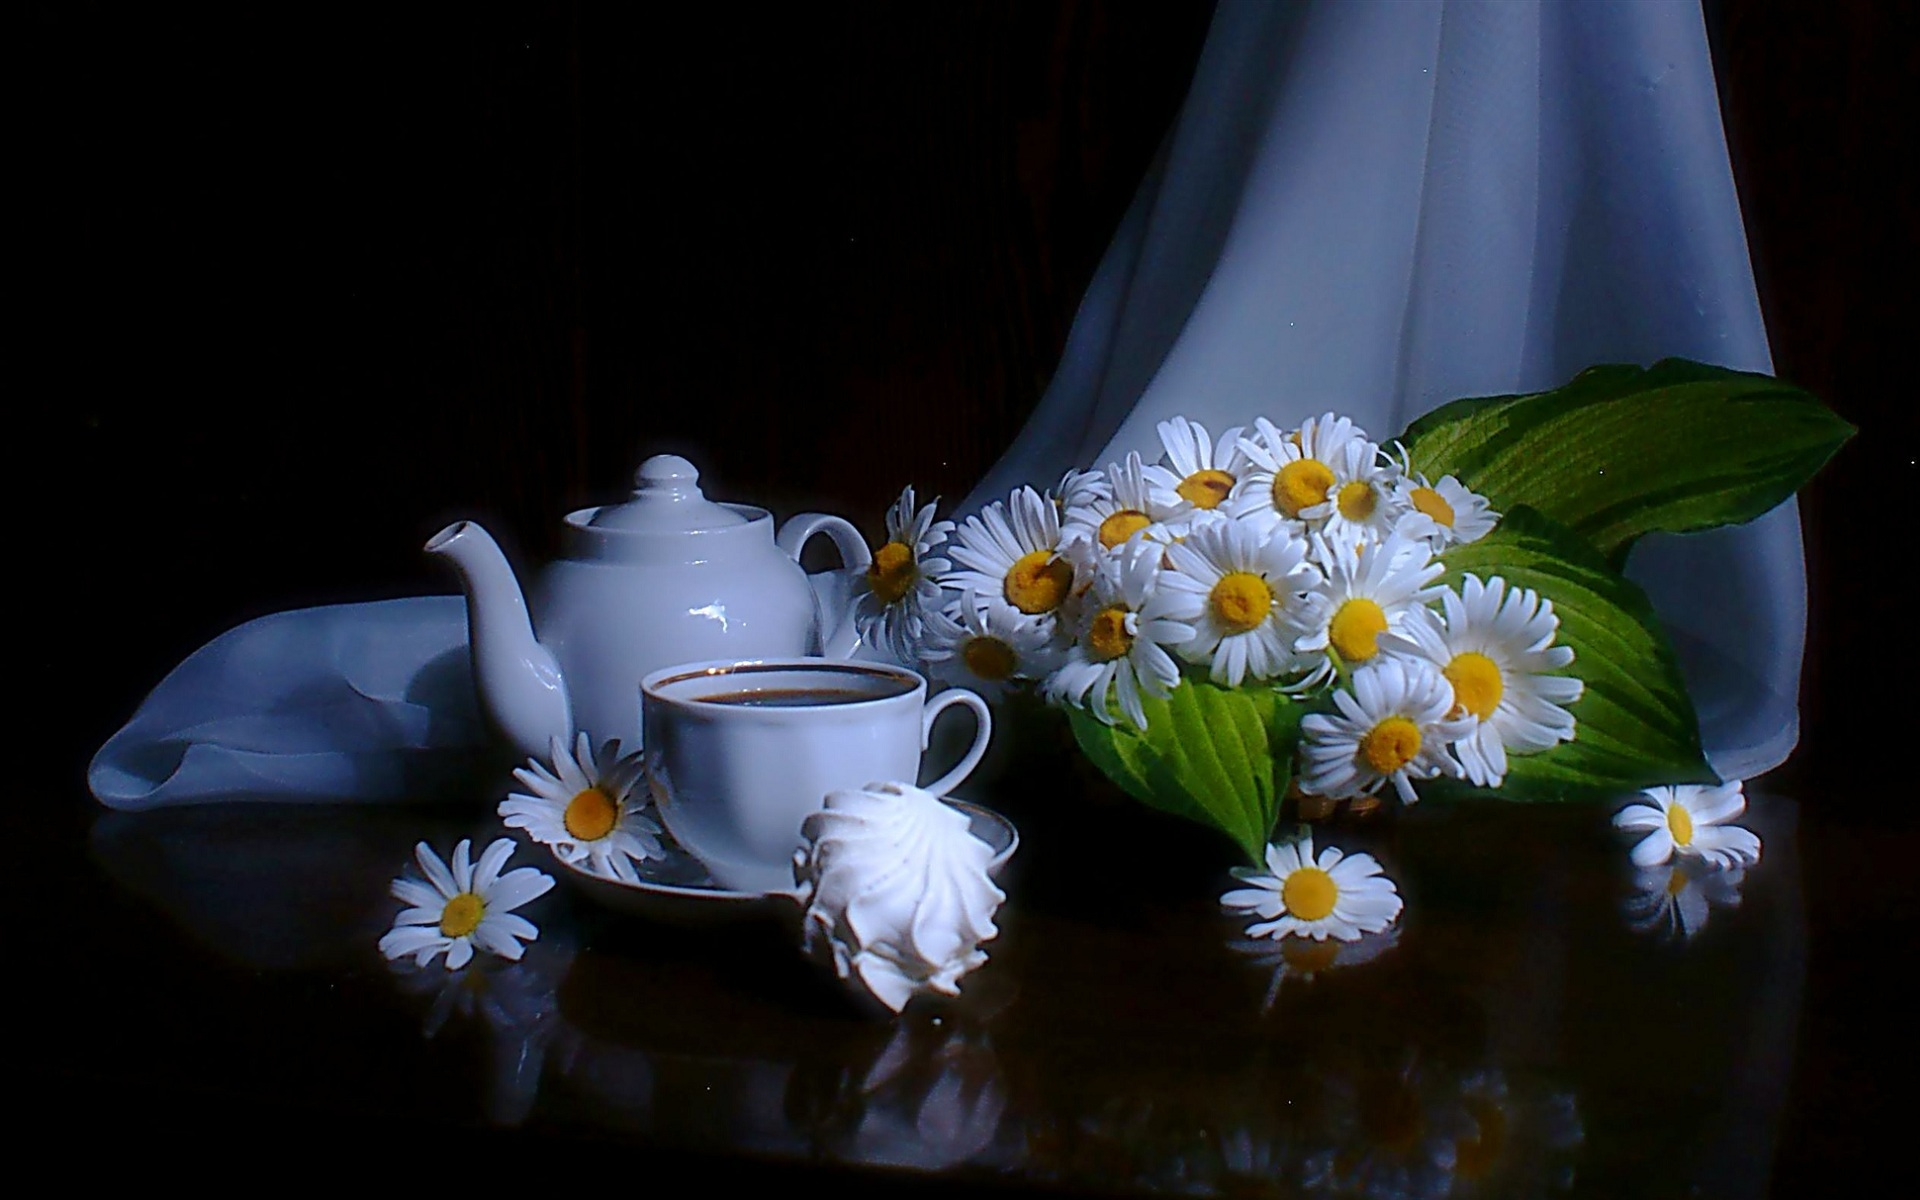 42259 download wallpaper Plants, Flowers, Objects, Camomile screensavers and pictures for free